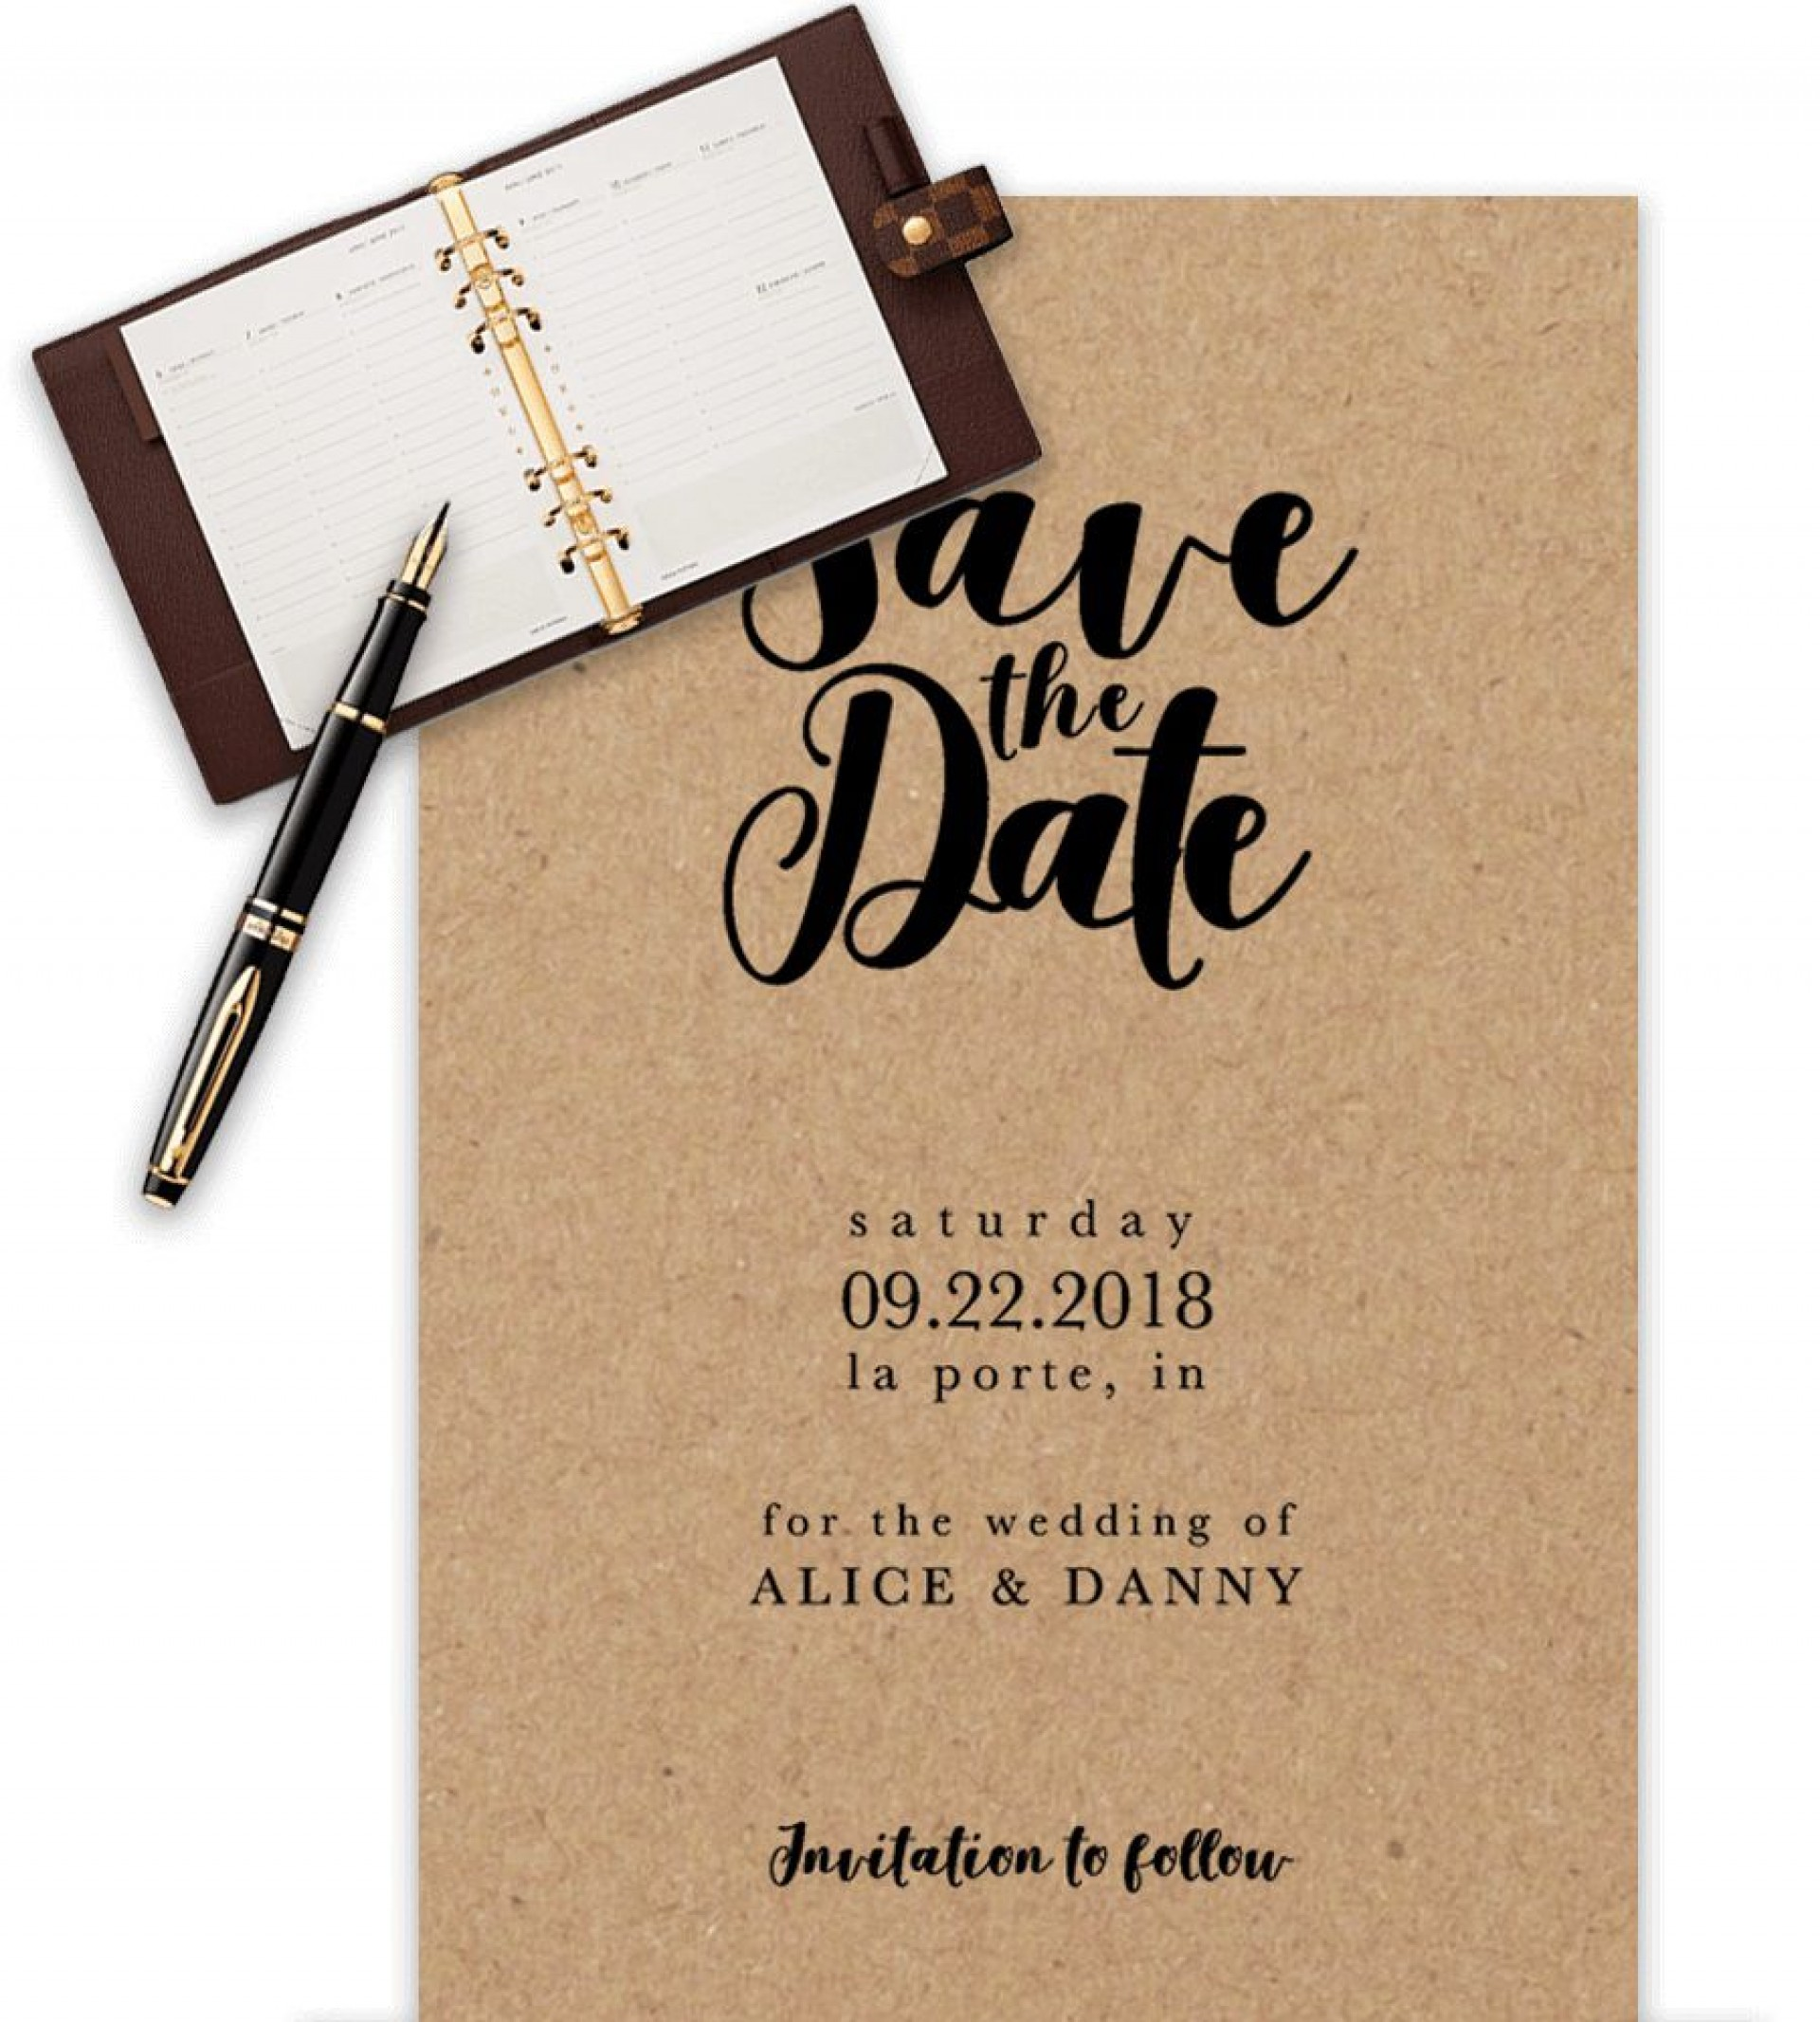 009 Fascinating Save The Date Word Template High Def  Free Birthday For Microsoft Postcard Flyer1920